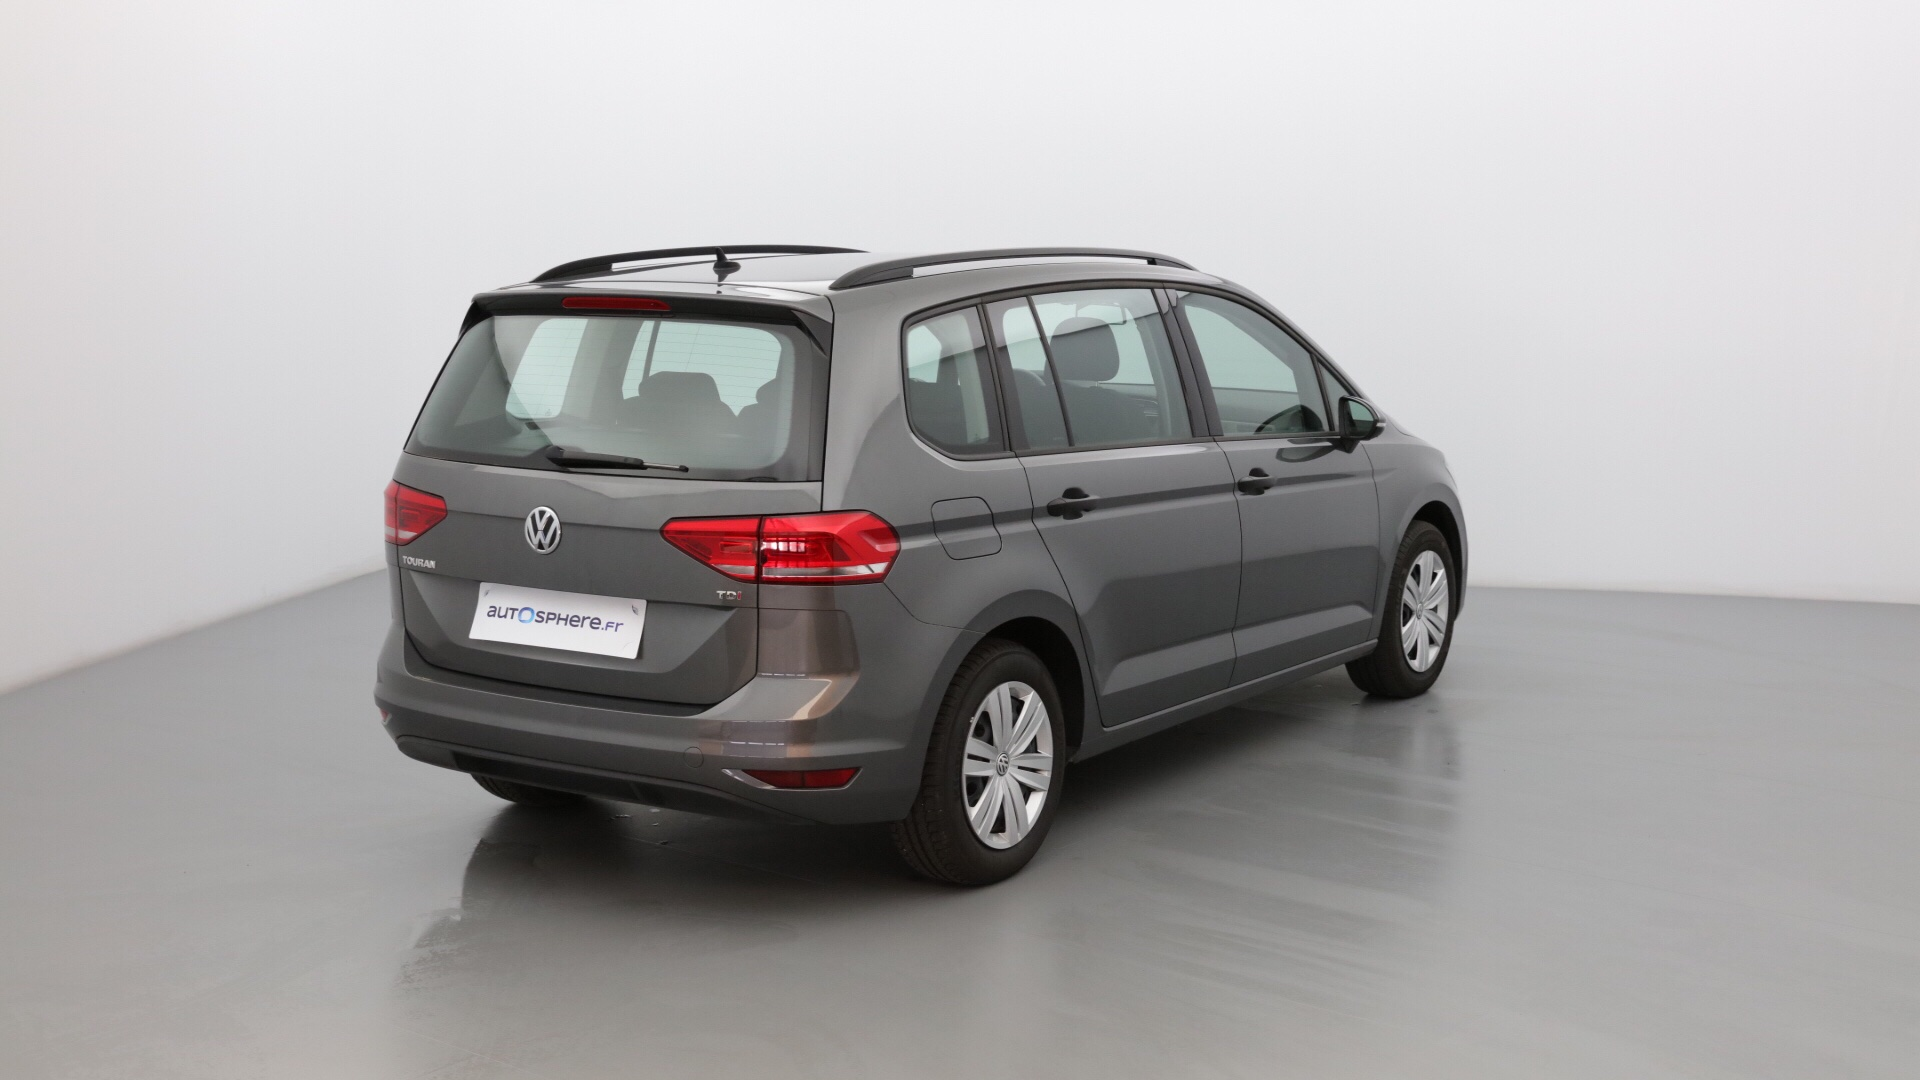 VOLKSWAGEN TOURAN 1.6 TDI 110CH BLUEMOTION TECHNOLOGY FAP TRENDLINE BUSINESS 5 PLACES - Miniature 5